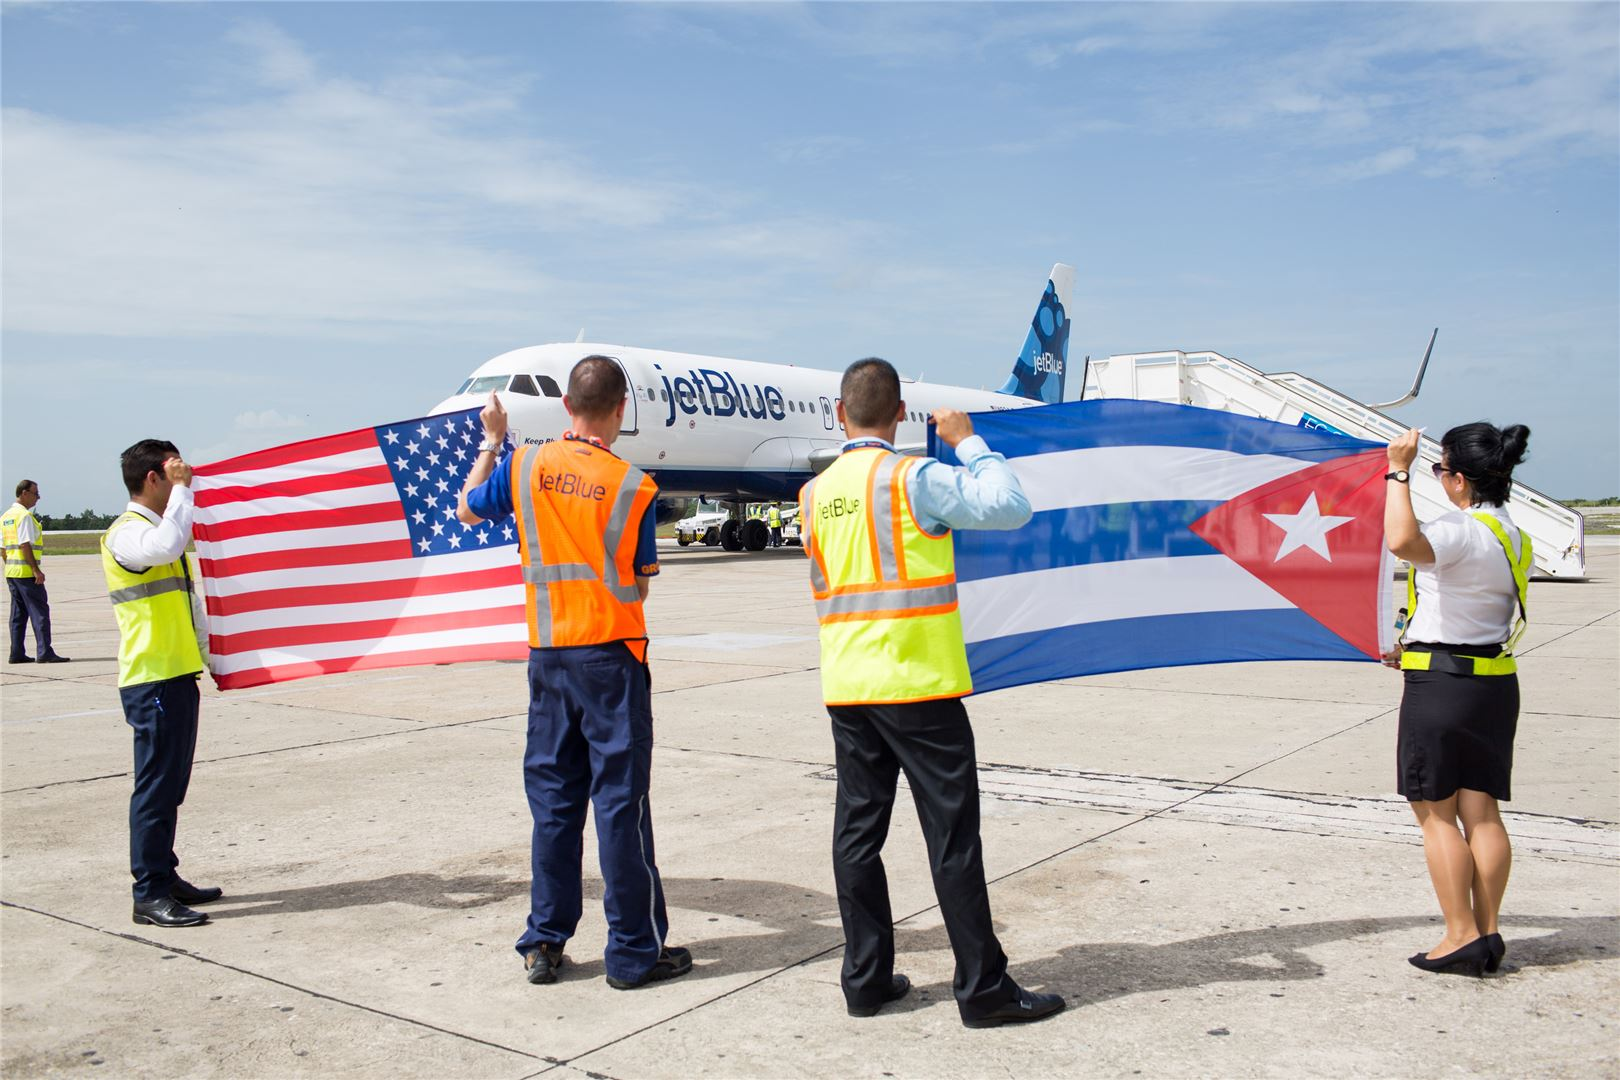 President Trump Rolls Back Cuba Détente But Keeps Cruise And Air Travel Open